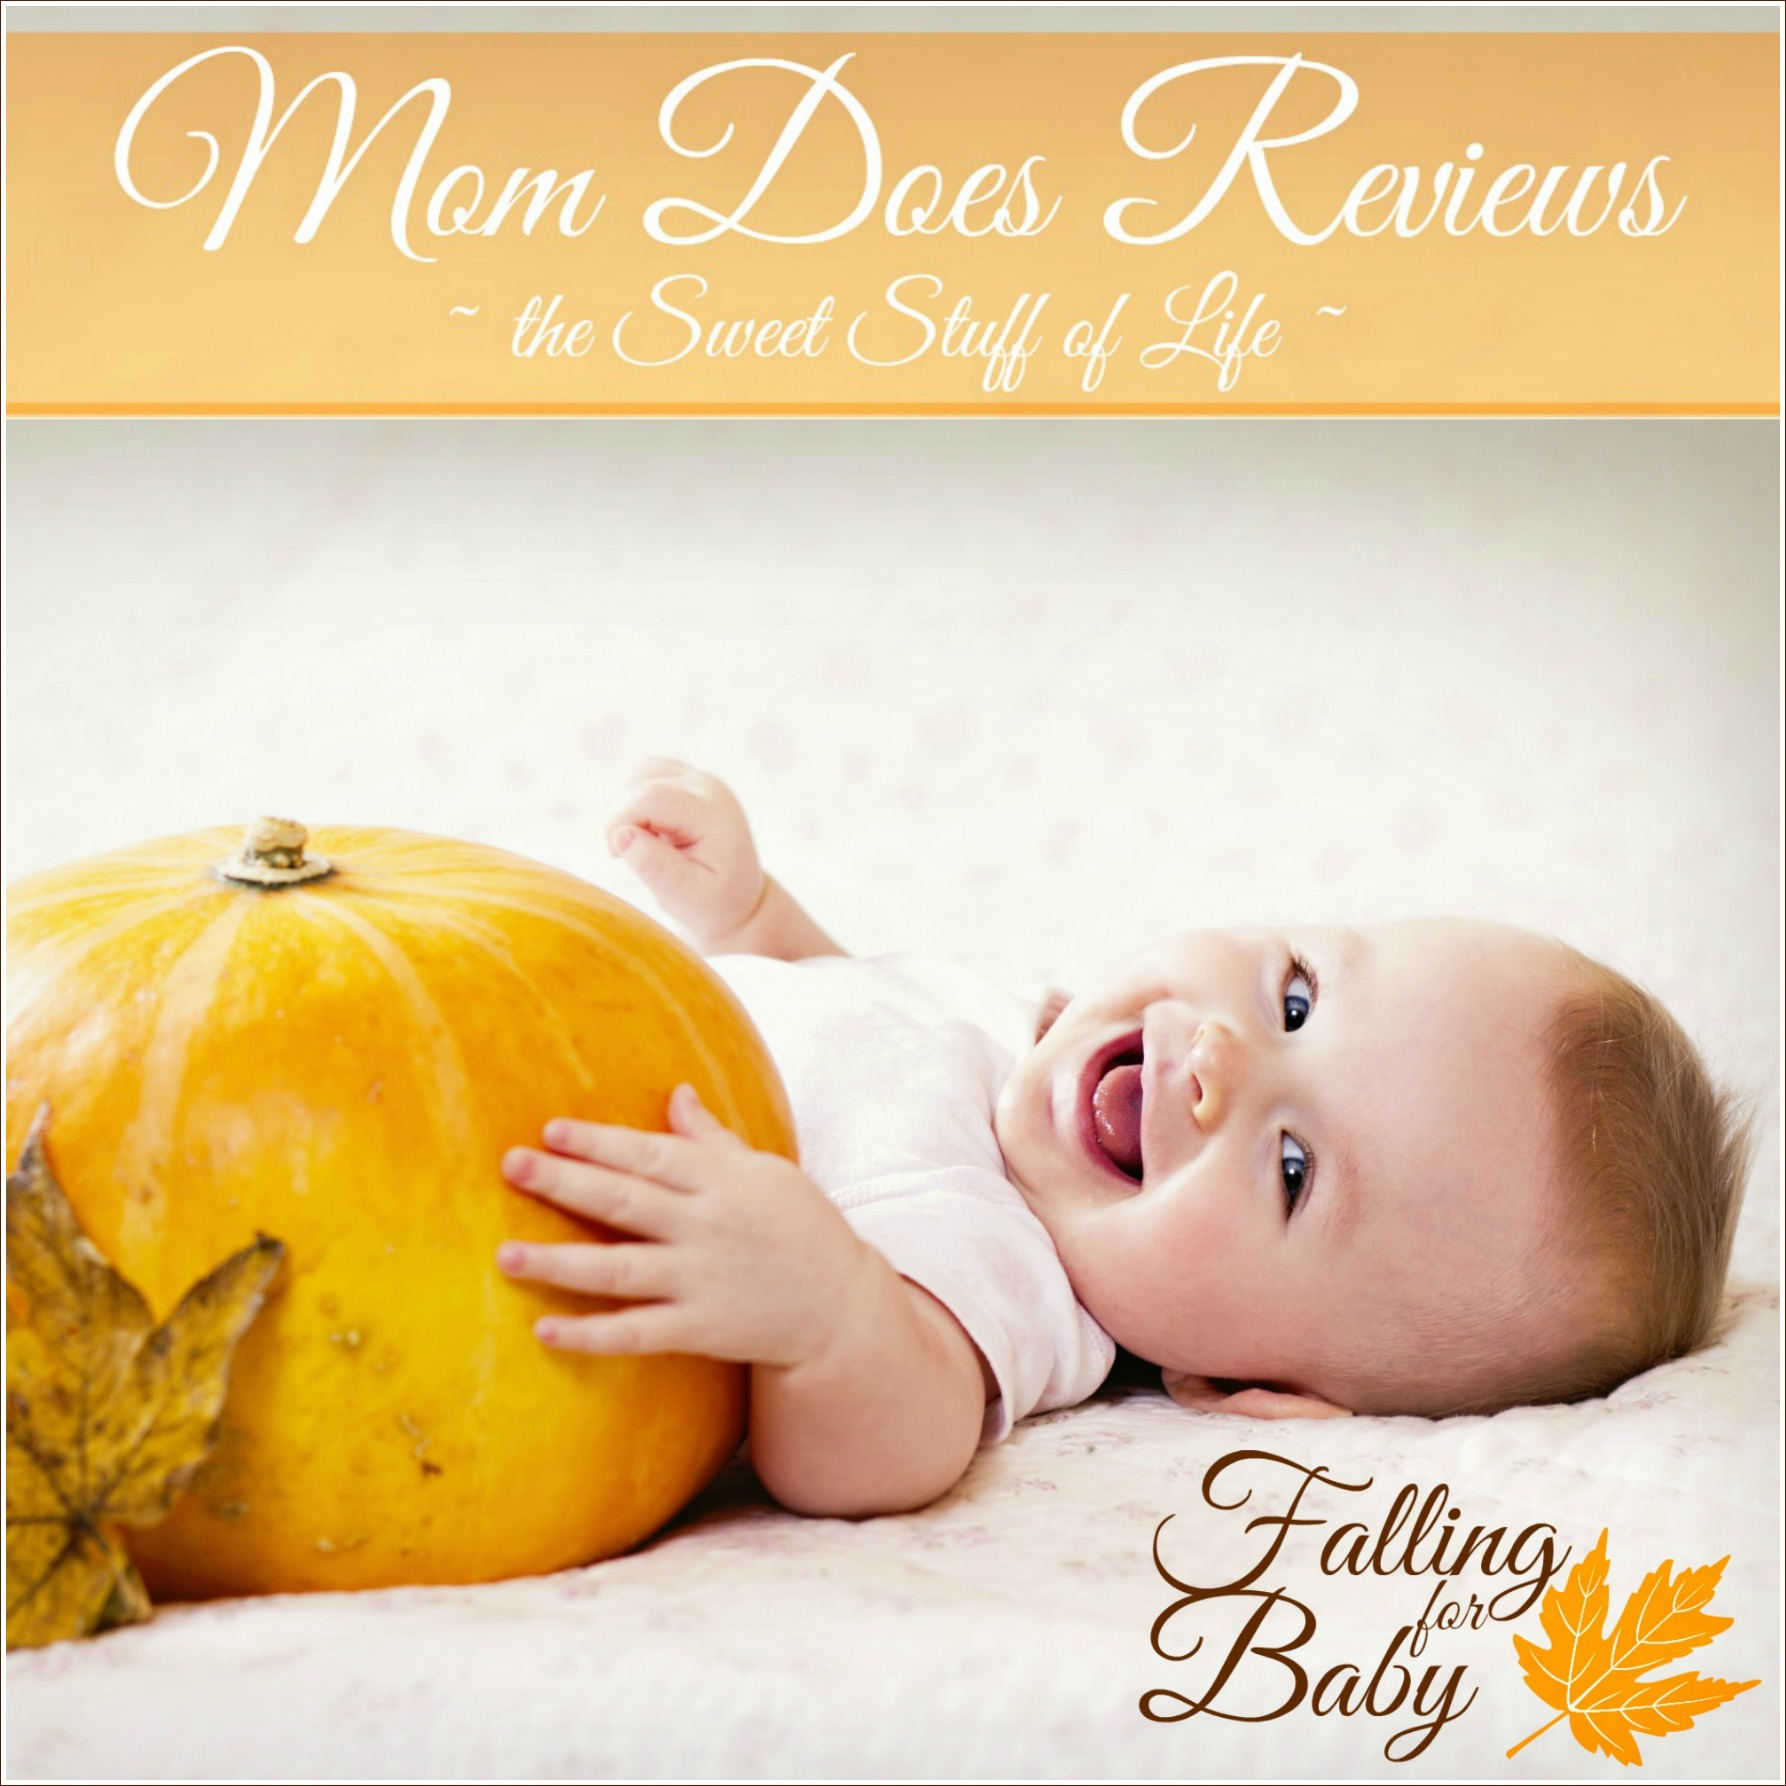 Mom Does Reviews is having a baby! Coming Soon this fall, 2014, Mom Does Reviews is Falling for Baby! #MomDoesReviews #BabyReviews #BabyGiveaways